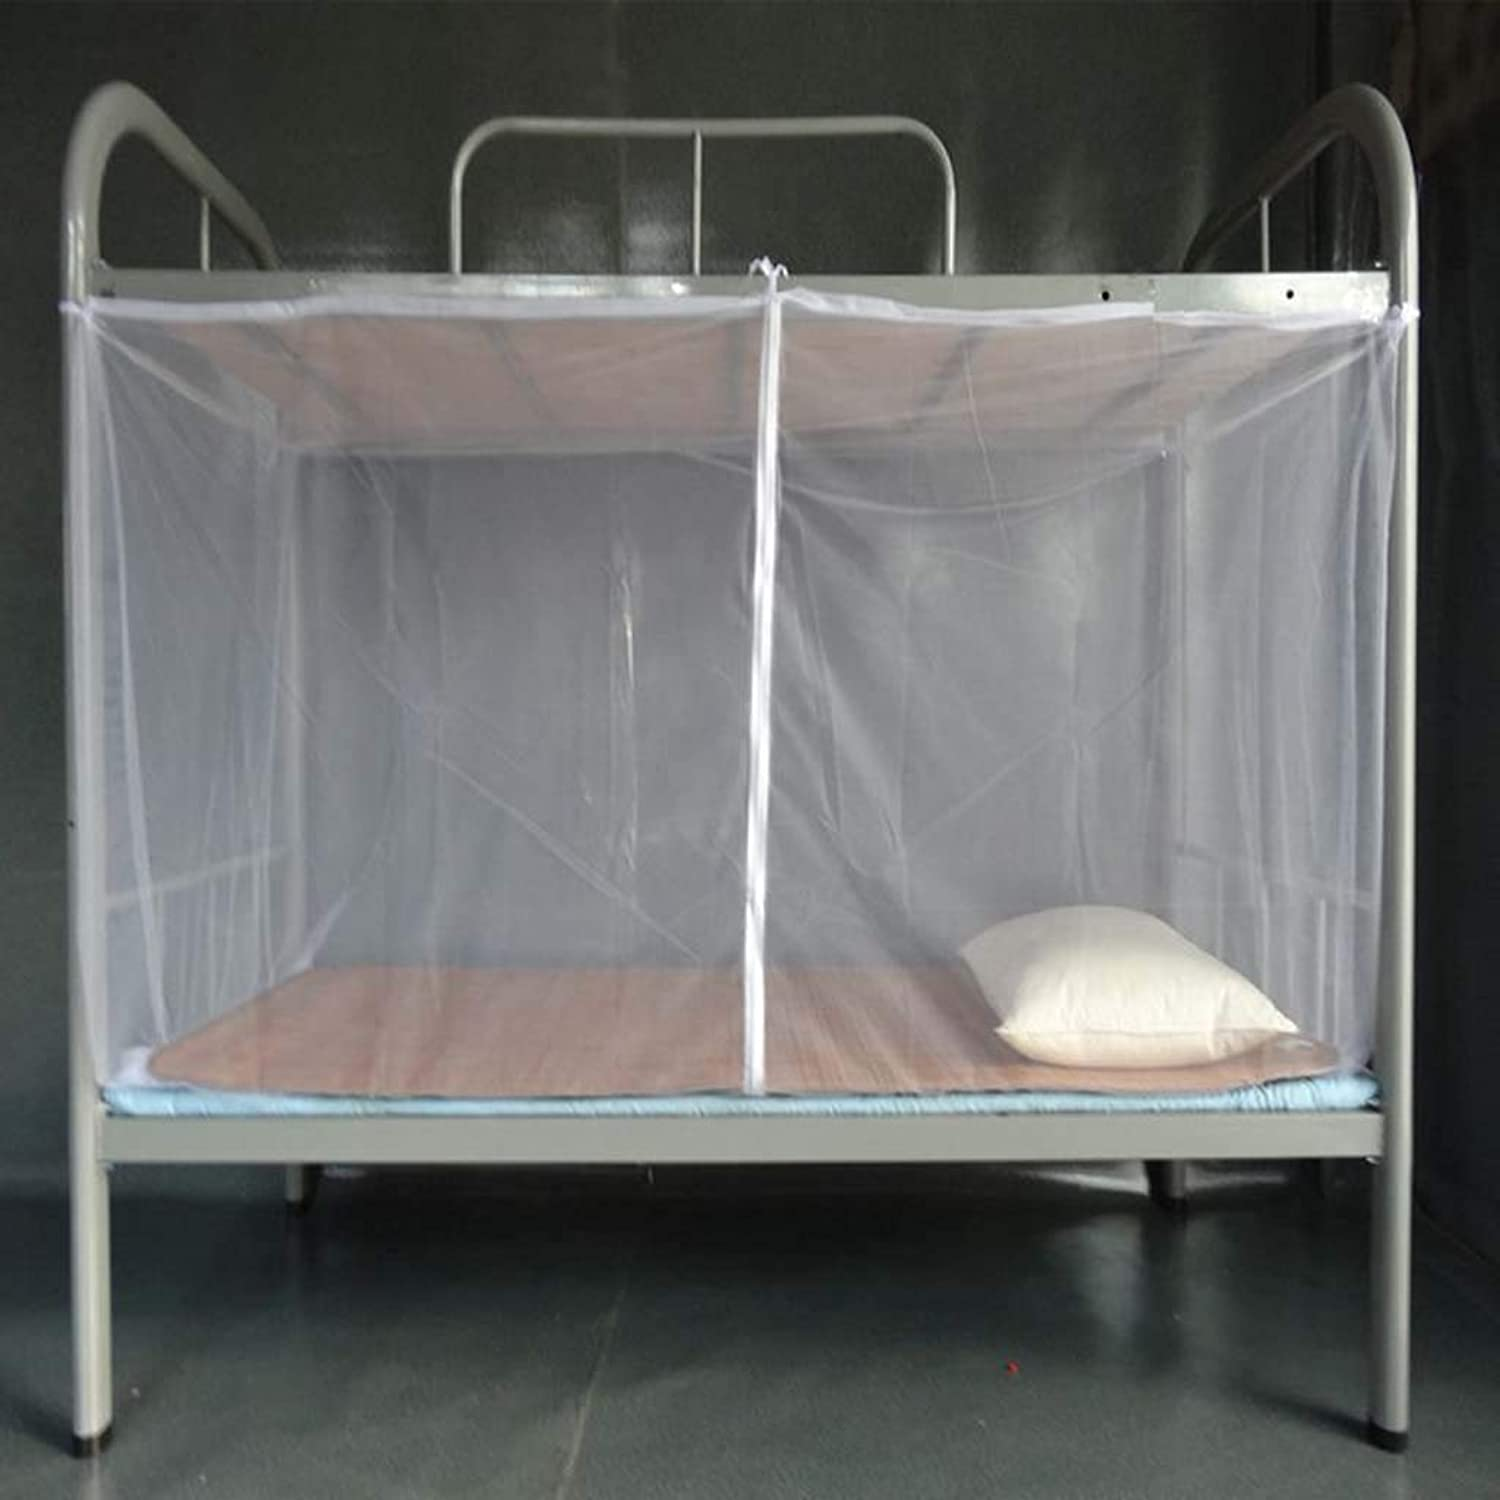 Bed nets, Student Dormitory Single Upper Curtains Integrated Shade Mosquito net,3,1.2  1.95  1.5  16